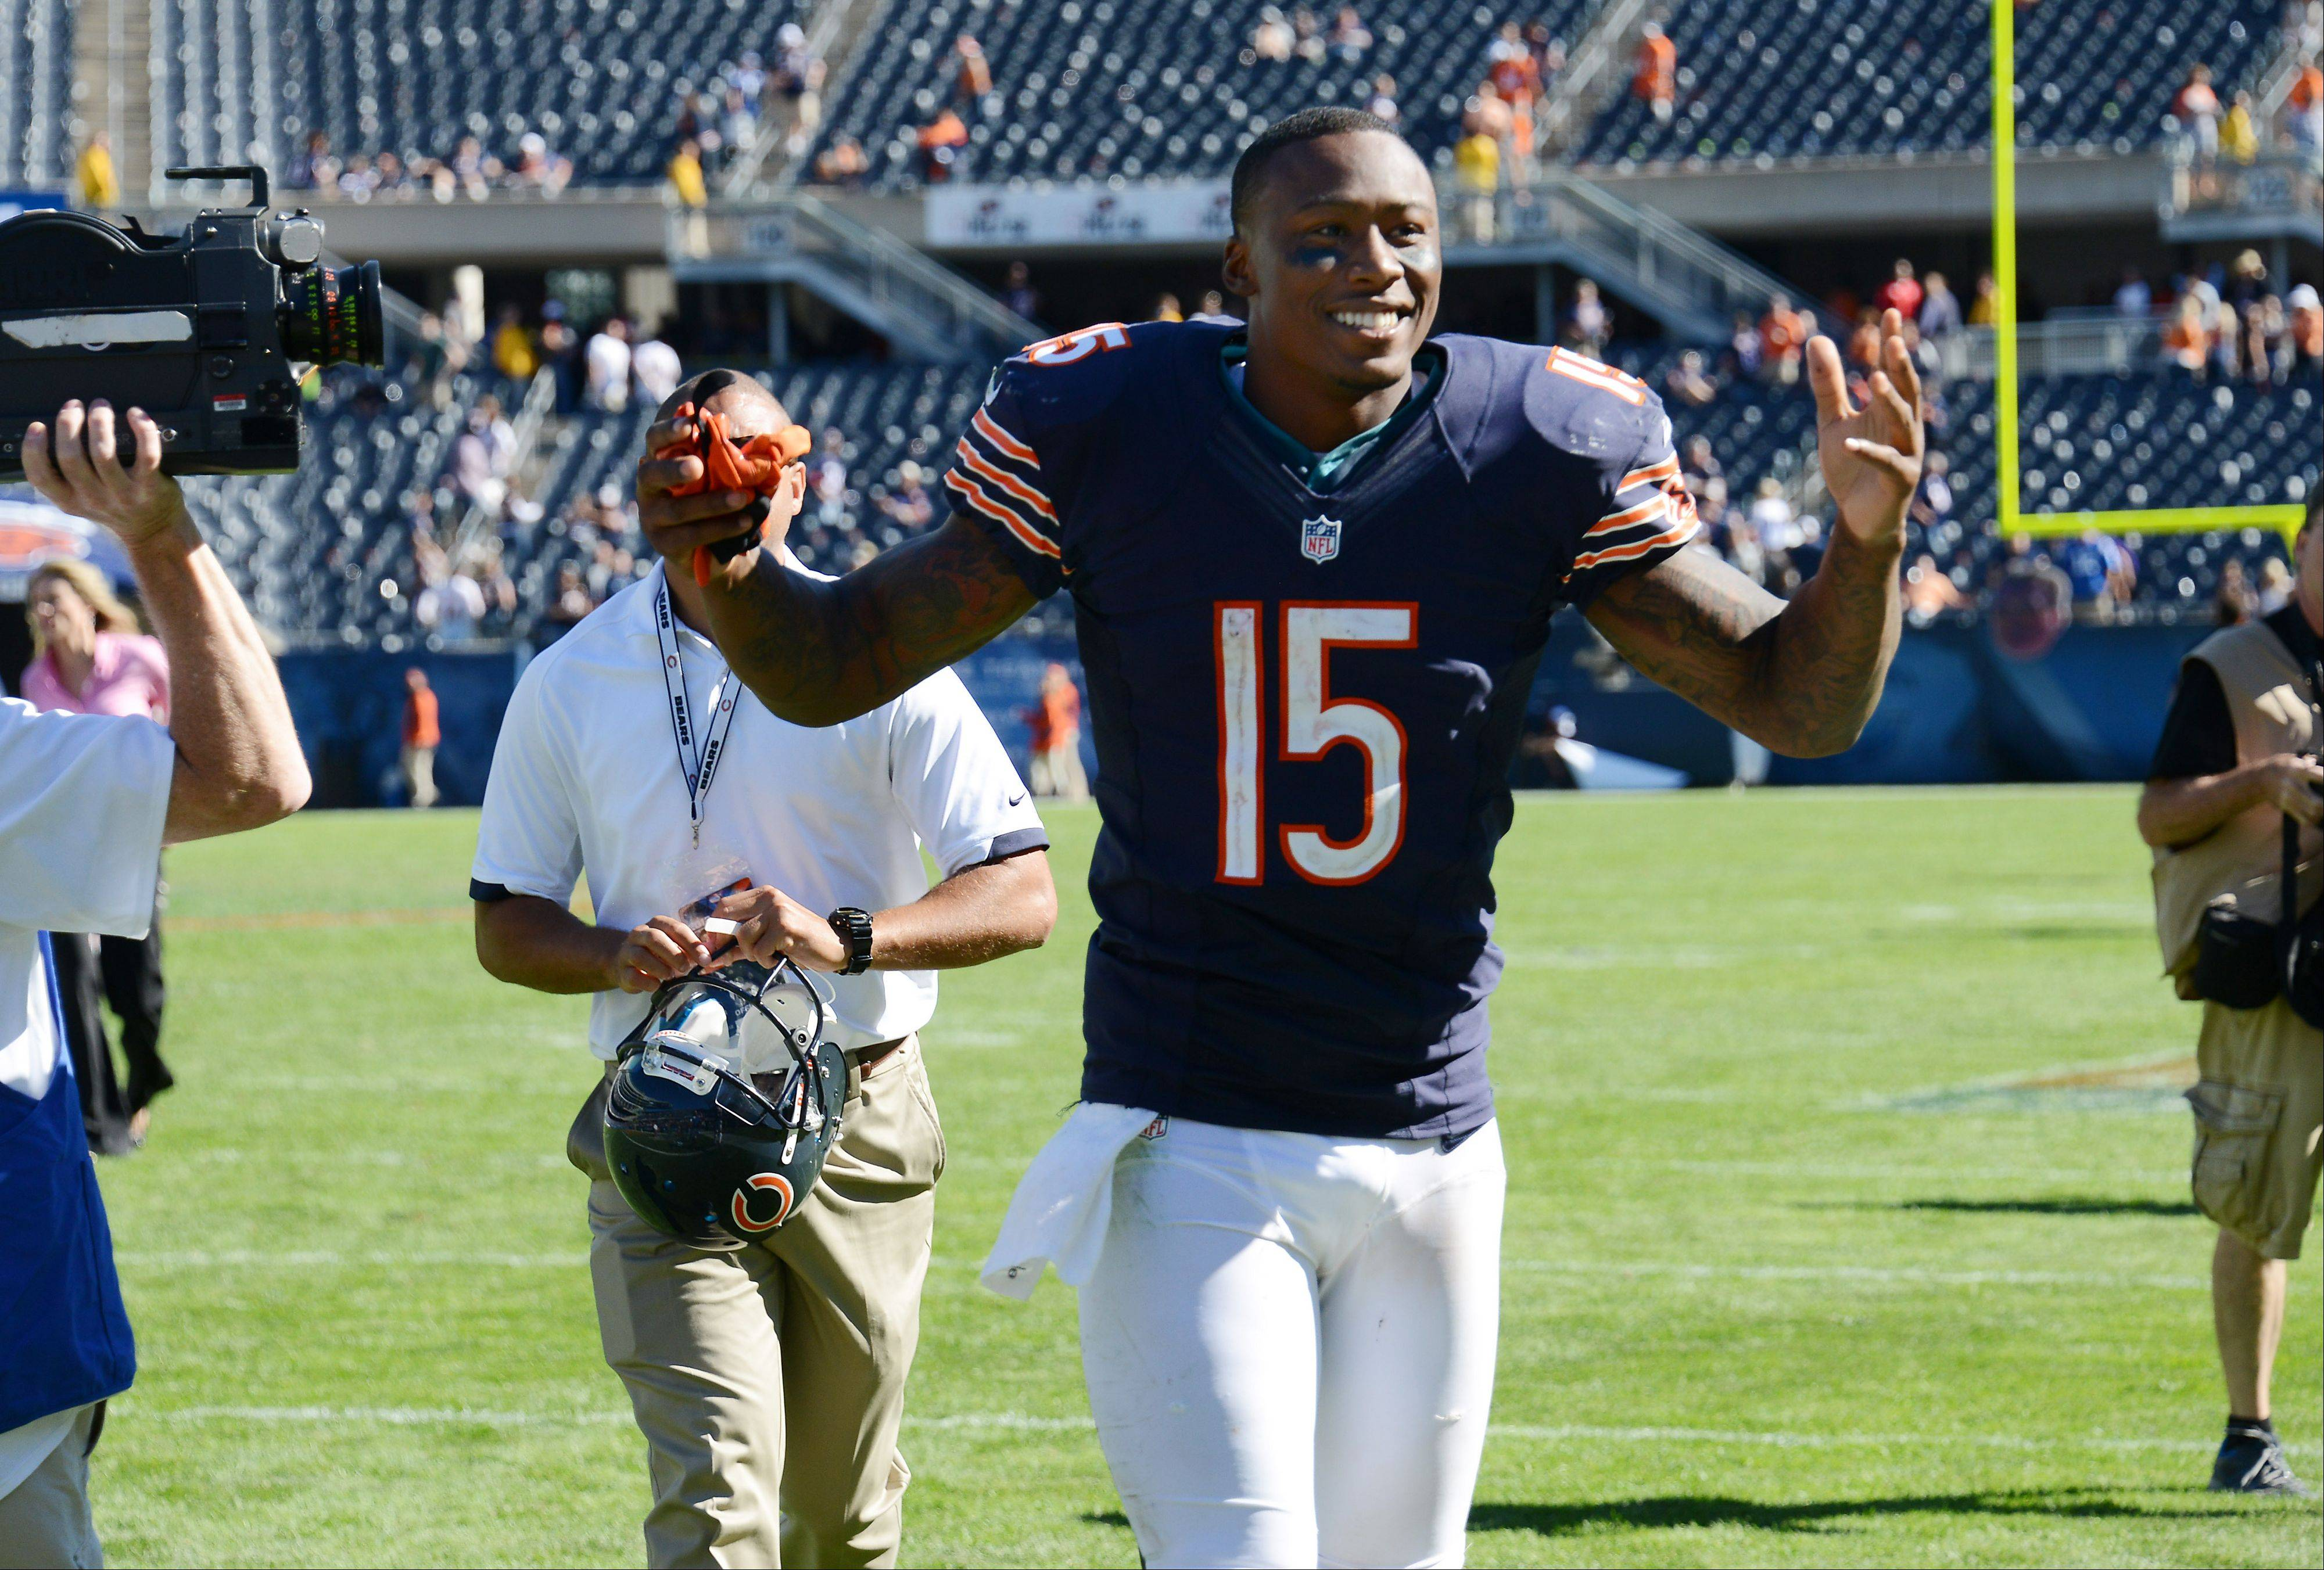 Bears wide receiver Brandon Marshall celebrates Sunday's season-opening victory as he runs off the field.